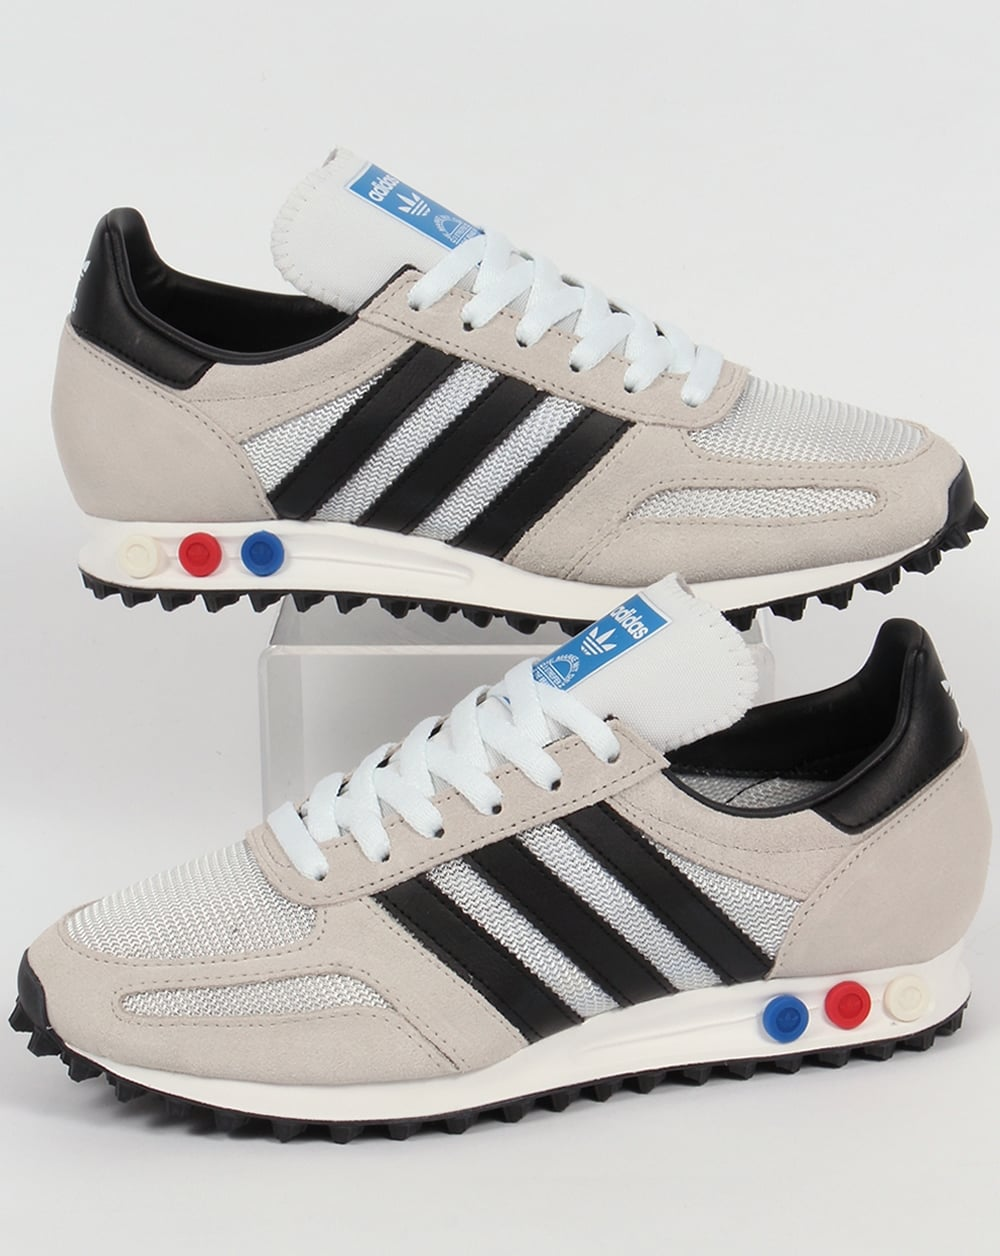 e87cd44e7be adidas Trainers Adidas LA Trainer OG Trainers White Black